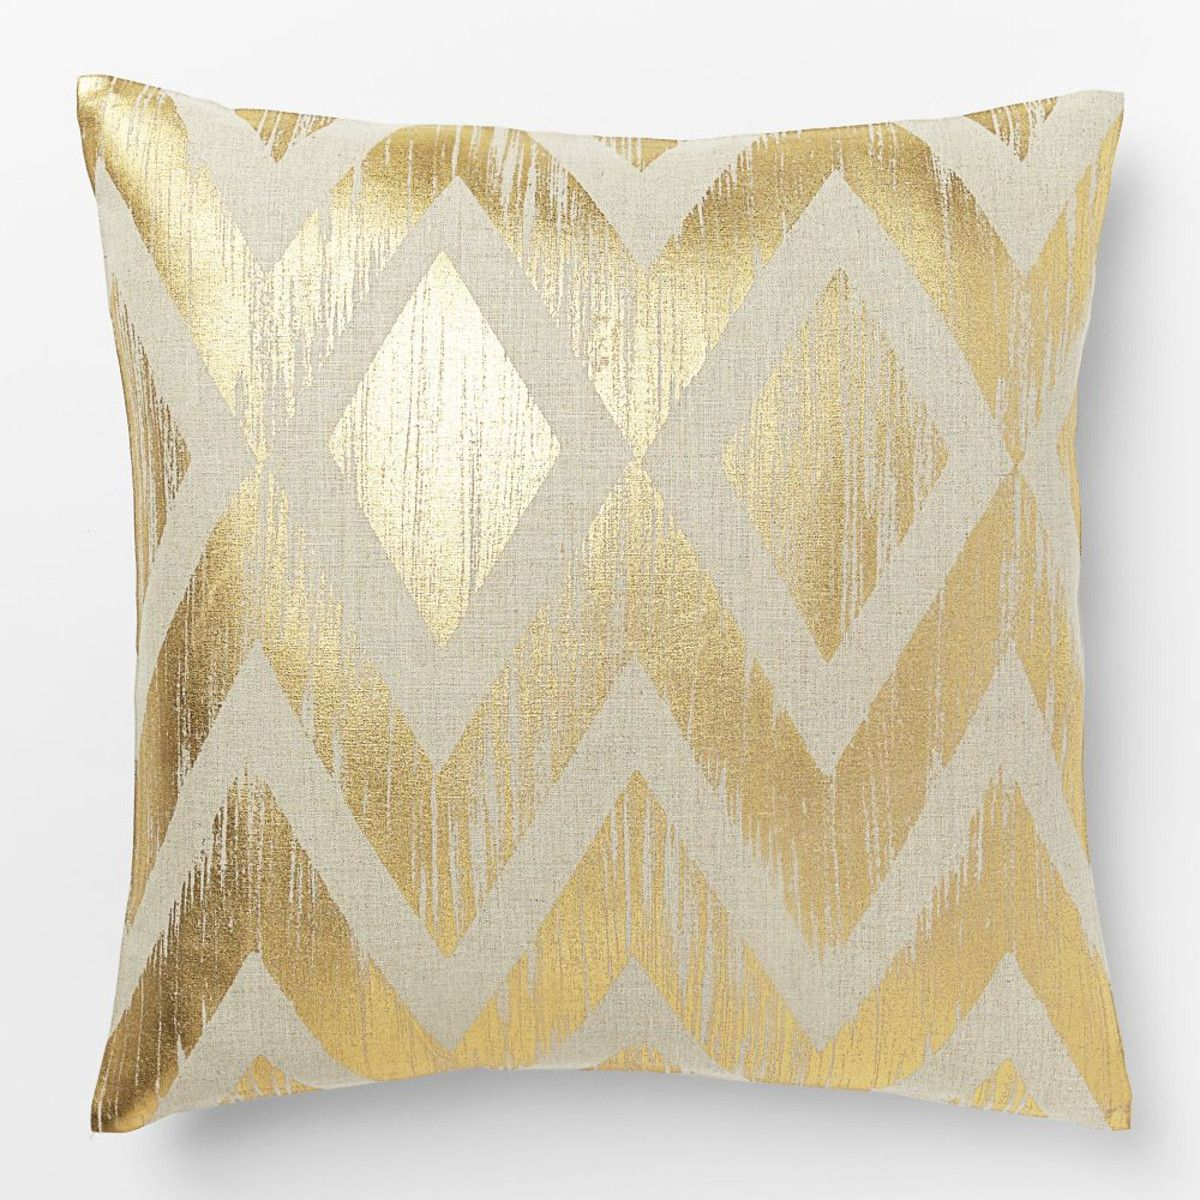 throw embellished pillows talitha x image adler decor bars and gold textured pillow alt jonathan modern